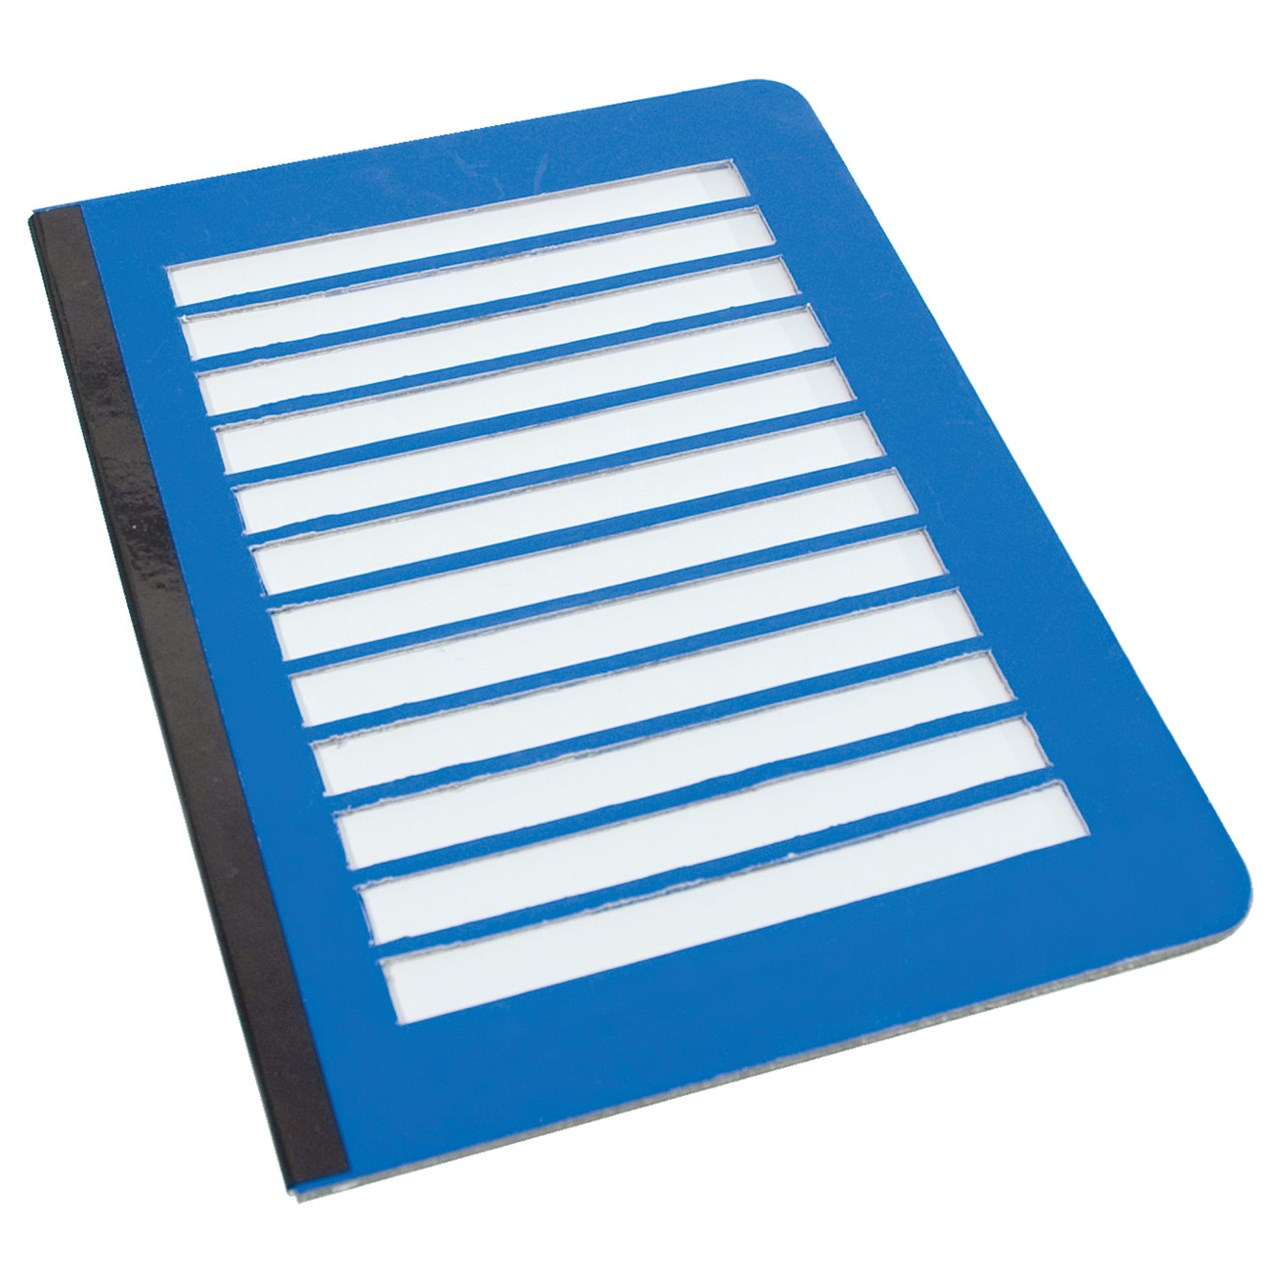 MaxiAids   Fold-Over Low Vision Note Writing Frame